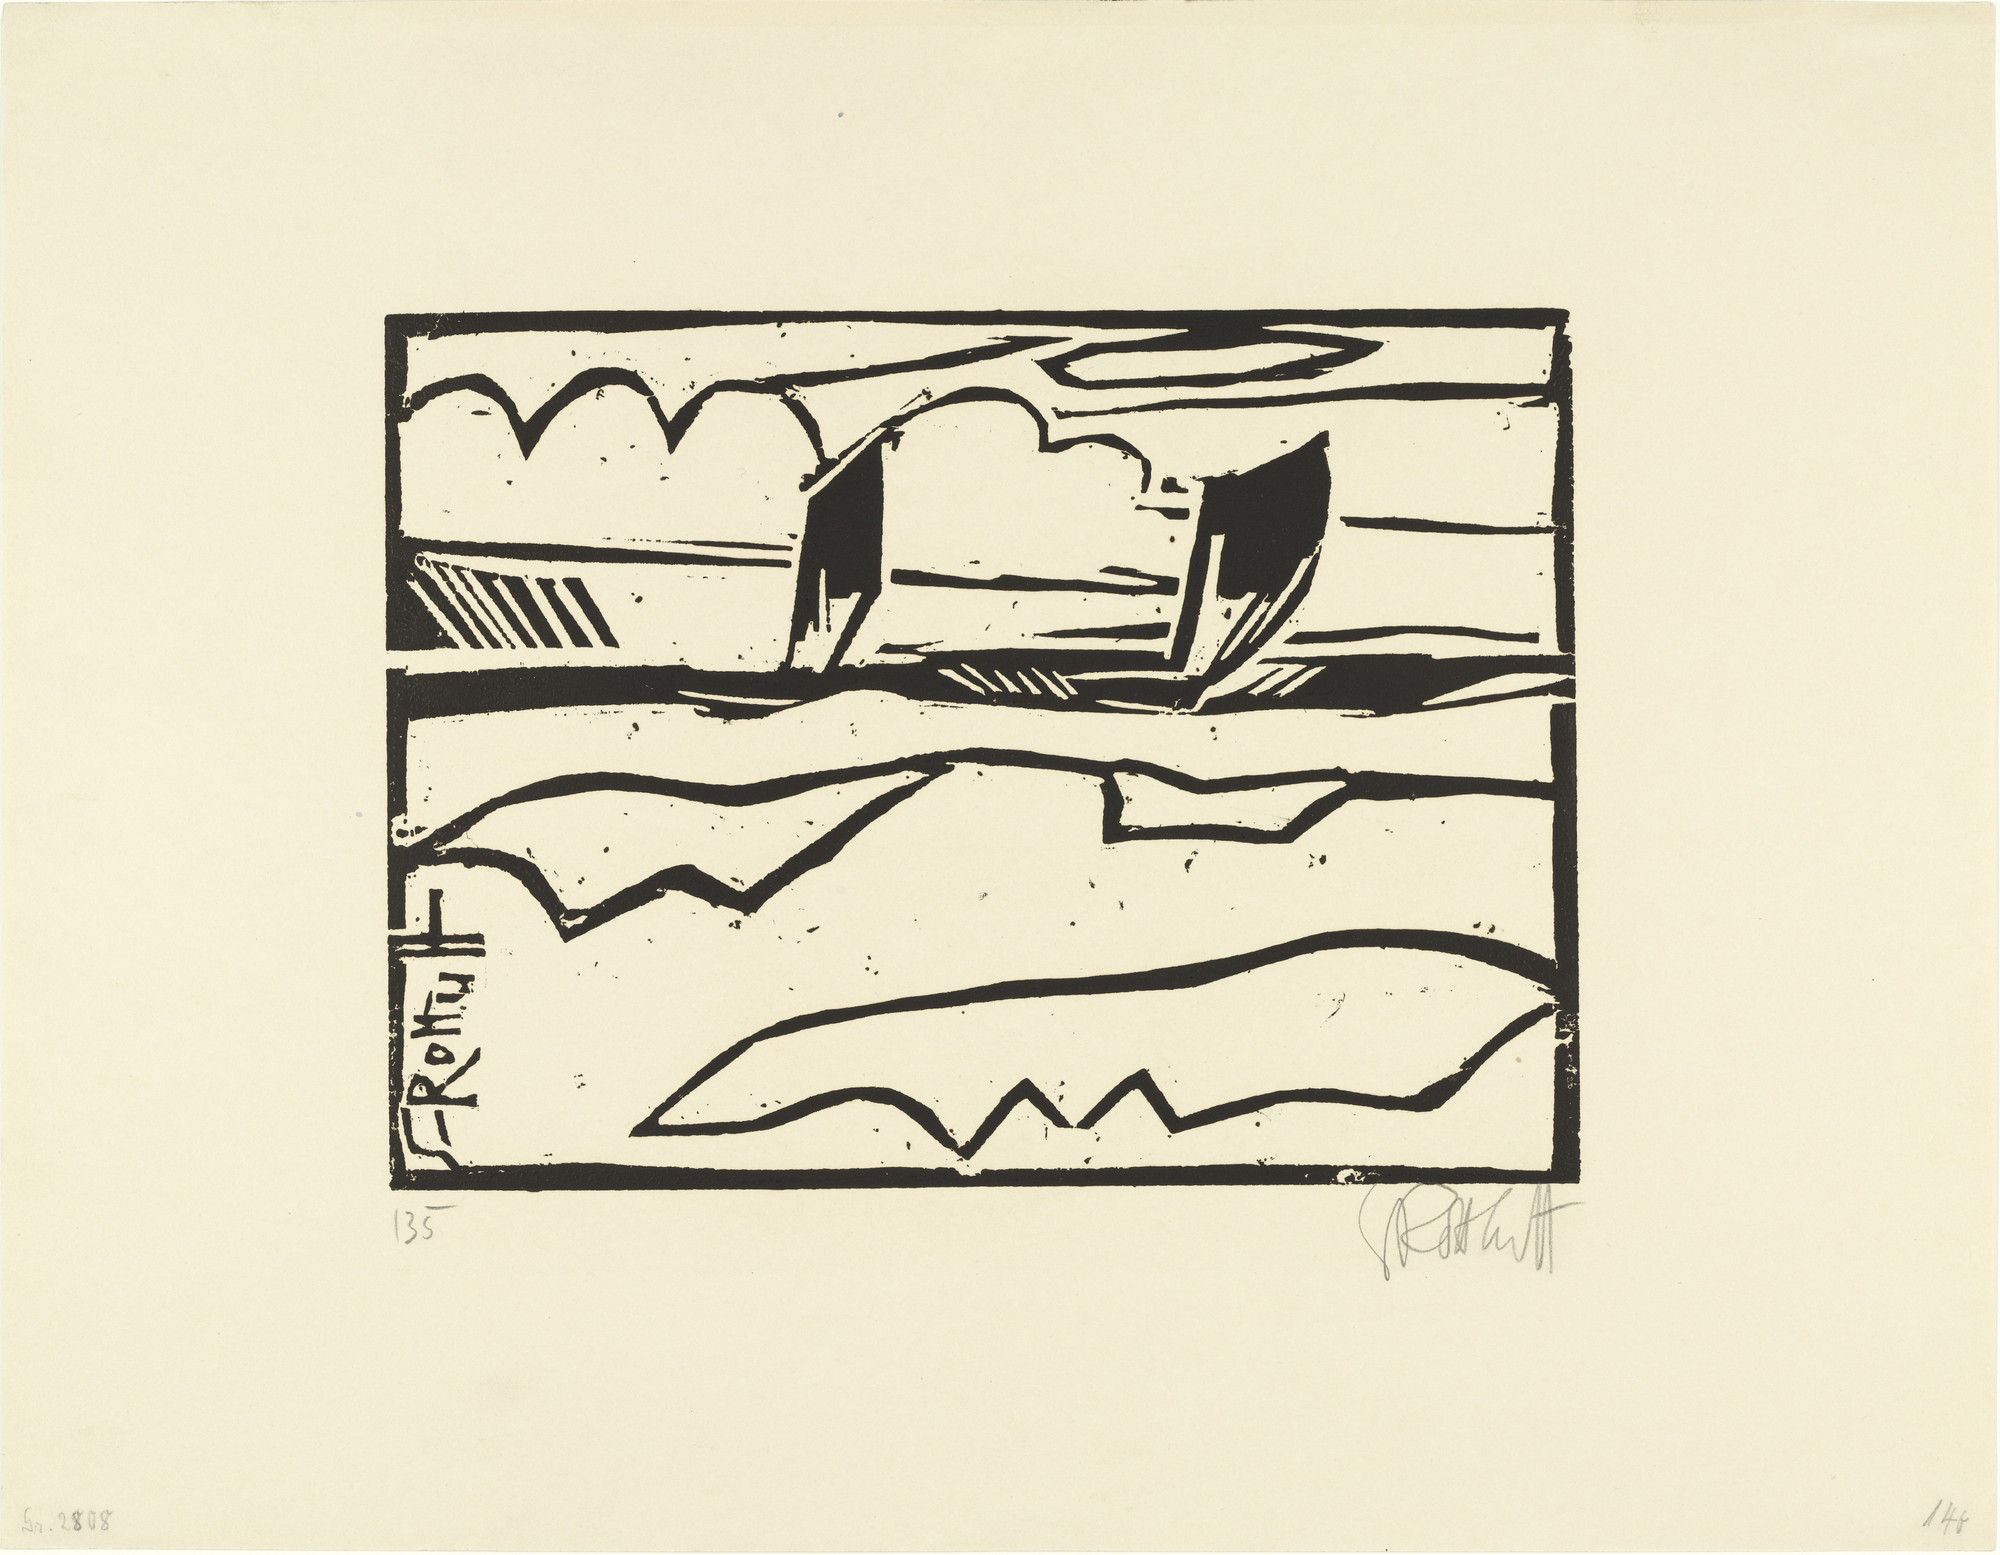 Karl Schmidt-Rottluff. Boats on the Sea (Boote auf See). (1913), published 1914